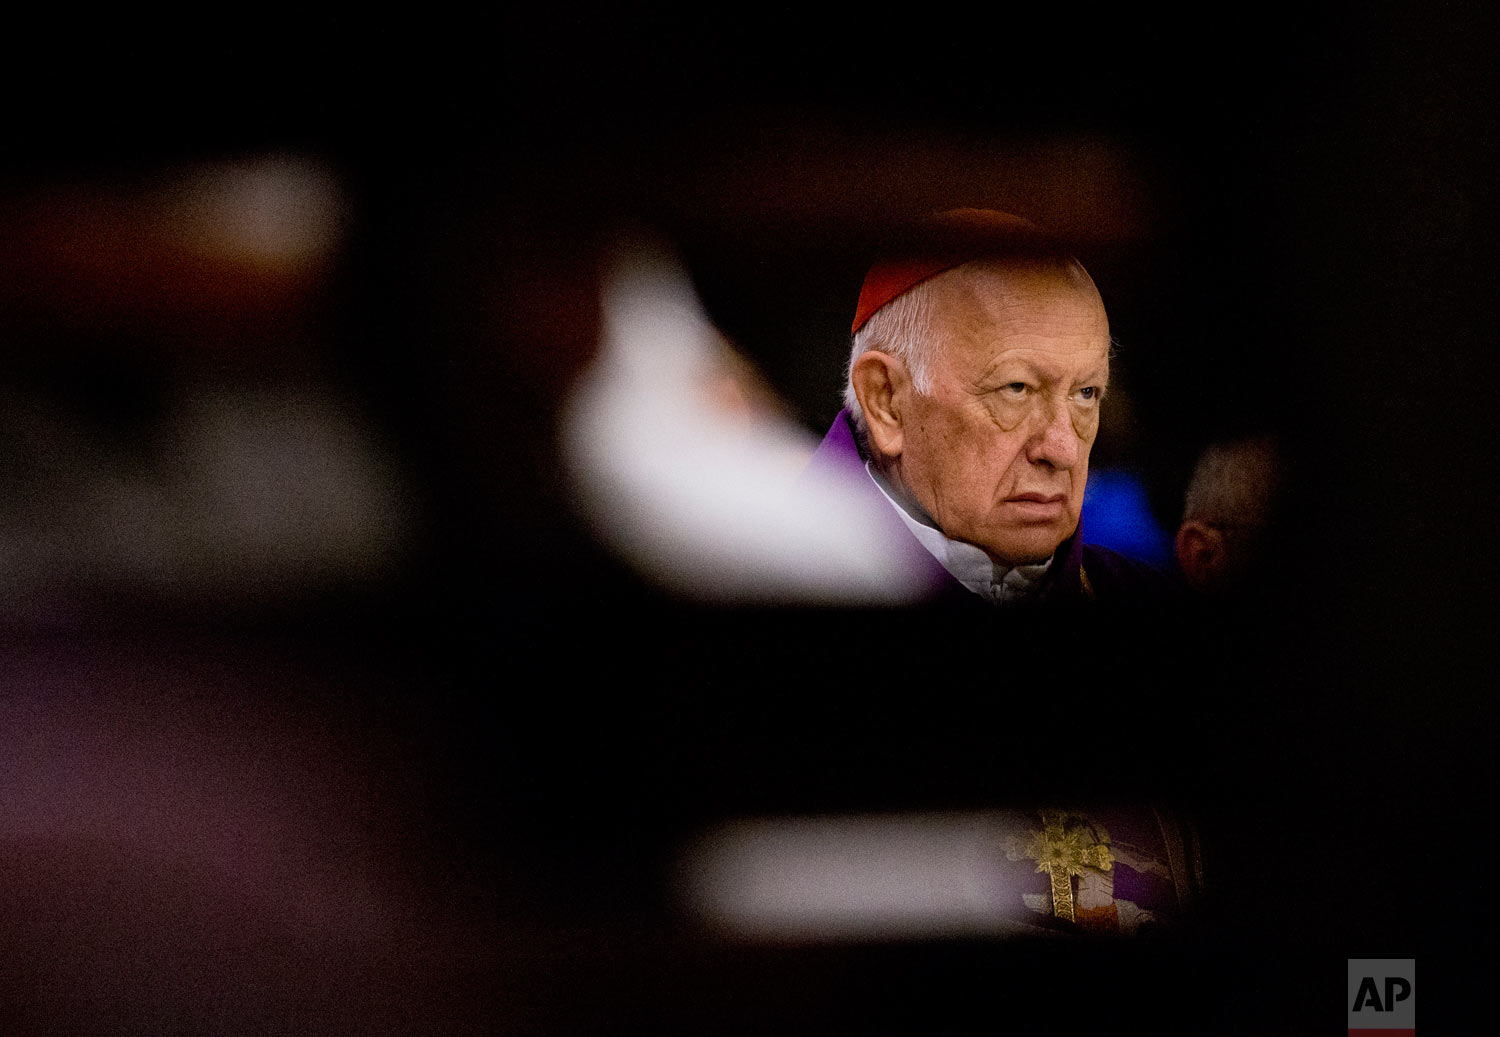 In this March 24, 2019 photo, former Archbishop of Santiago, Cardinal Ricardo Ezzati, takes part in a Mass at the Cathedral of Santiago, Chile, the day after Pope Francis replaced him as archbishop after he was placed under criminal investigation. (AP Photo/Esteban Felix)